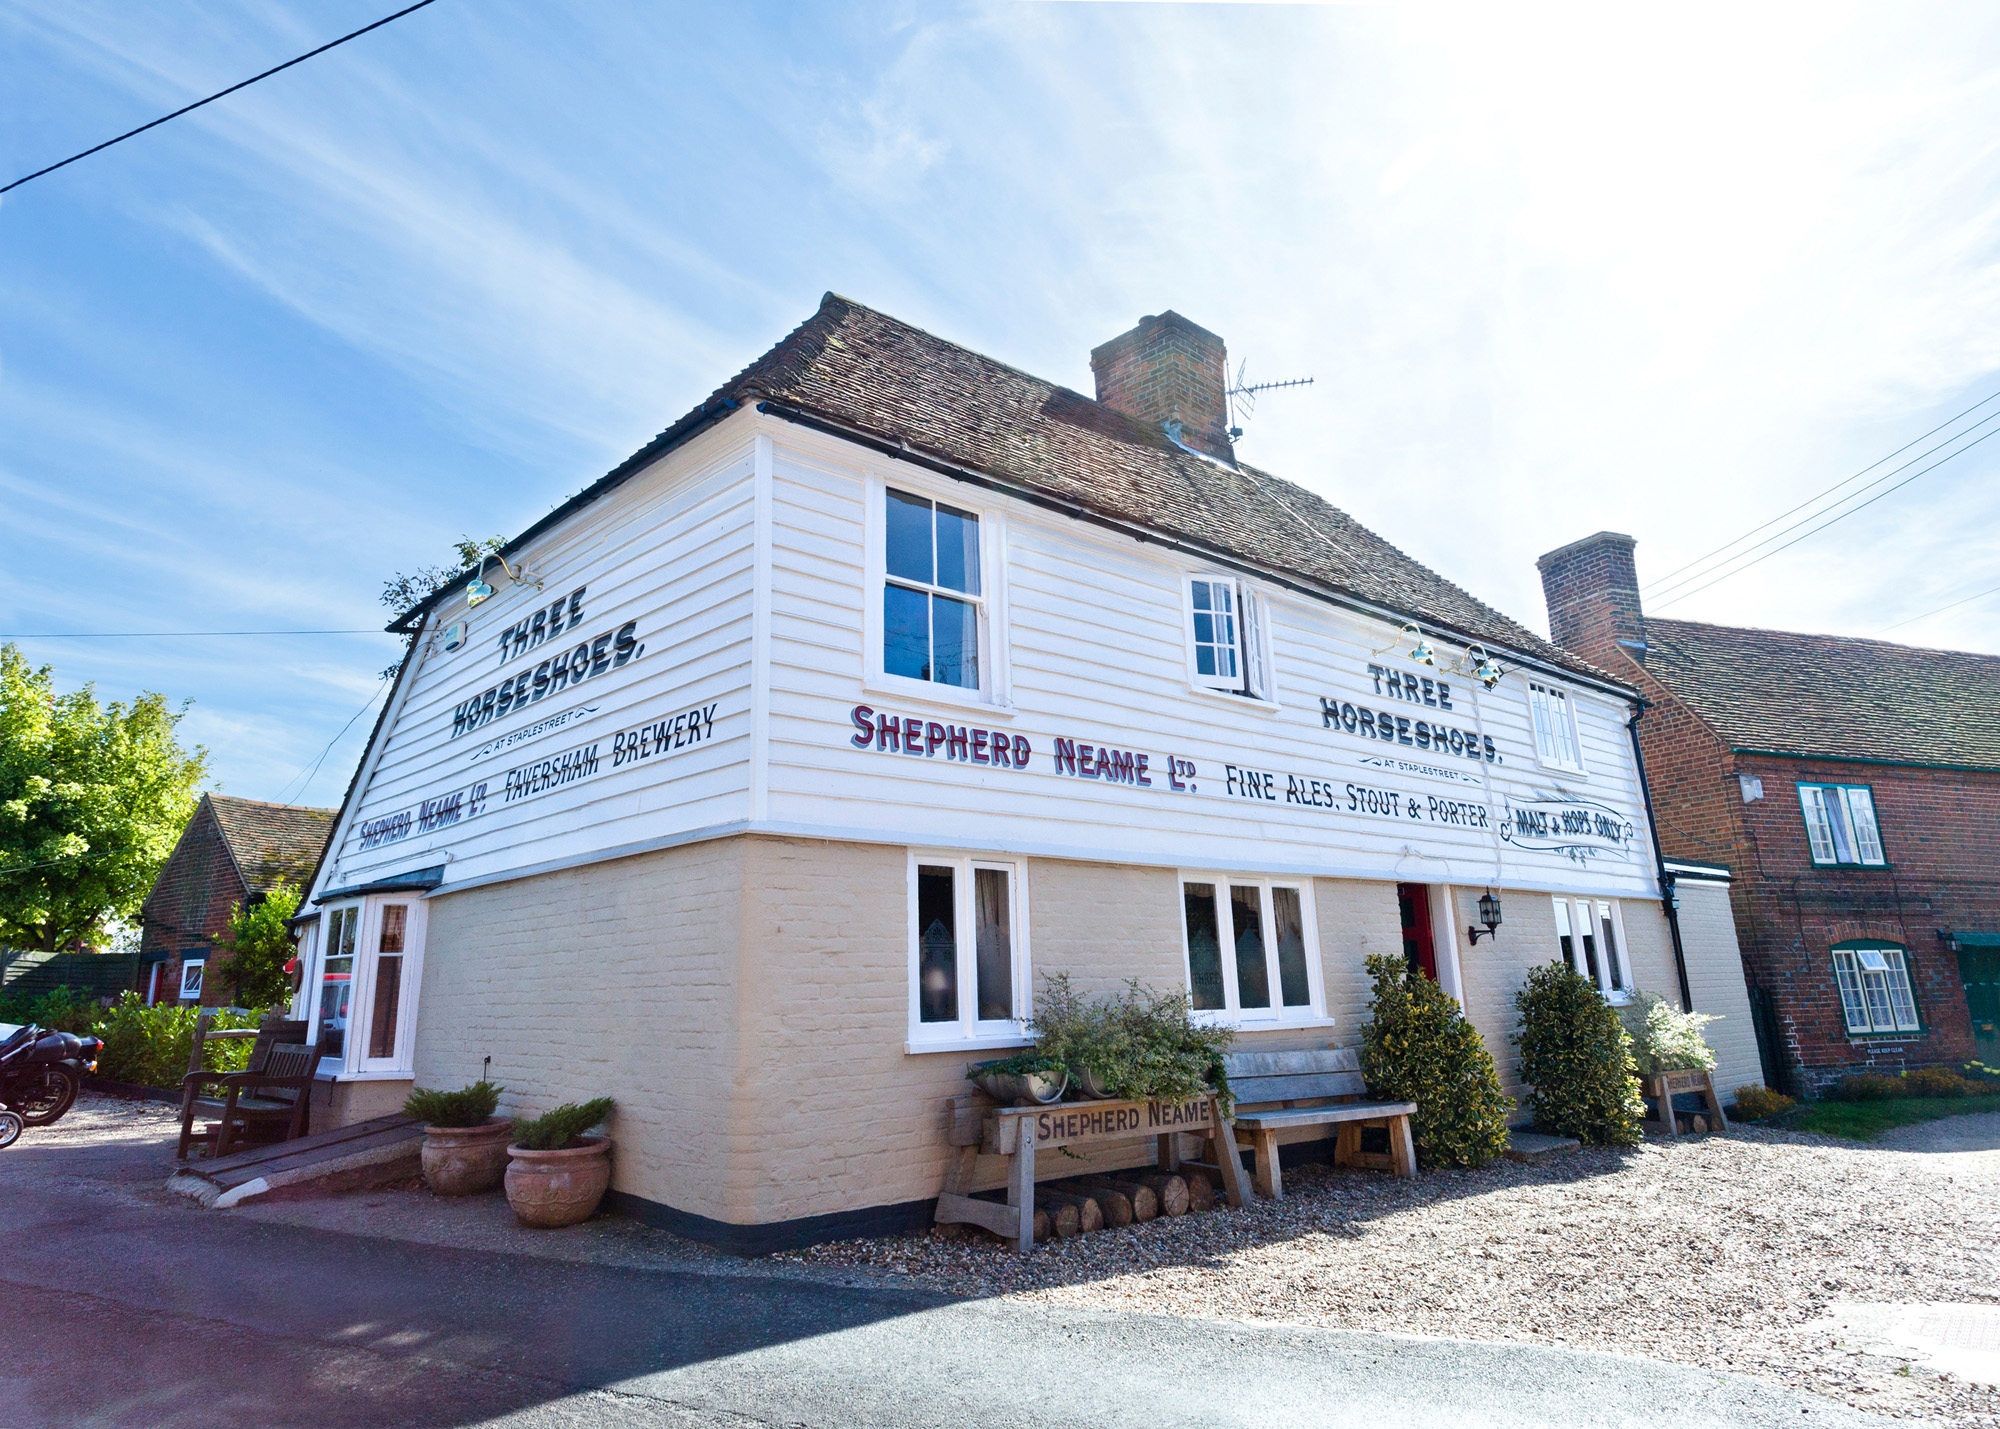 Three Horseshoes Faversham